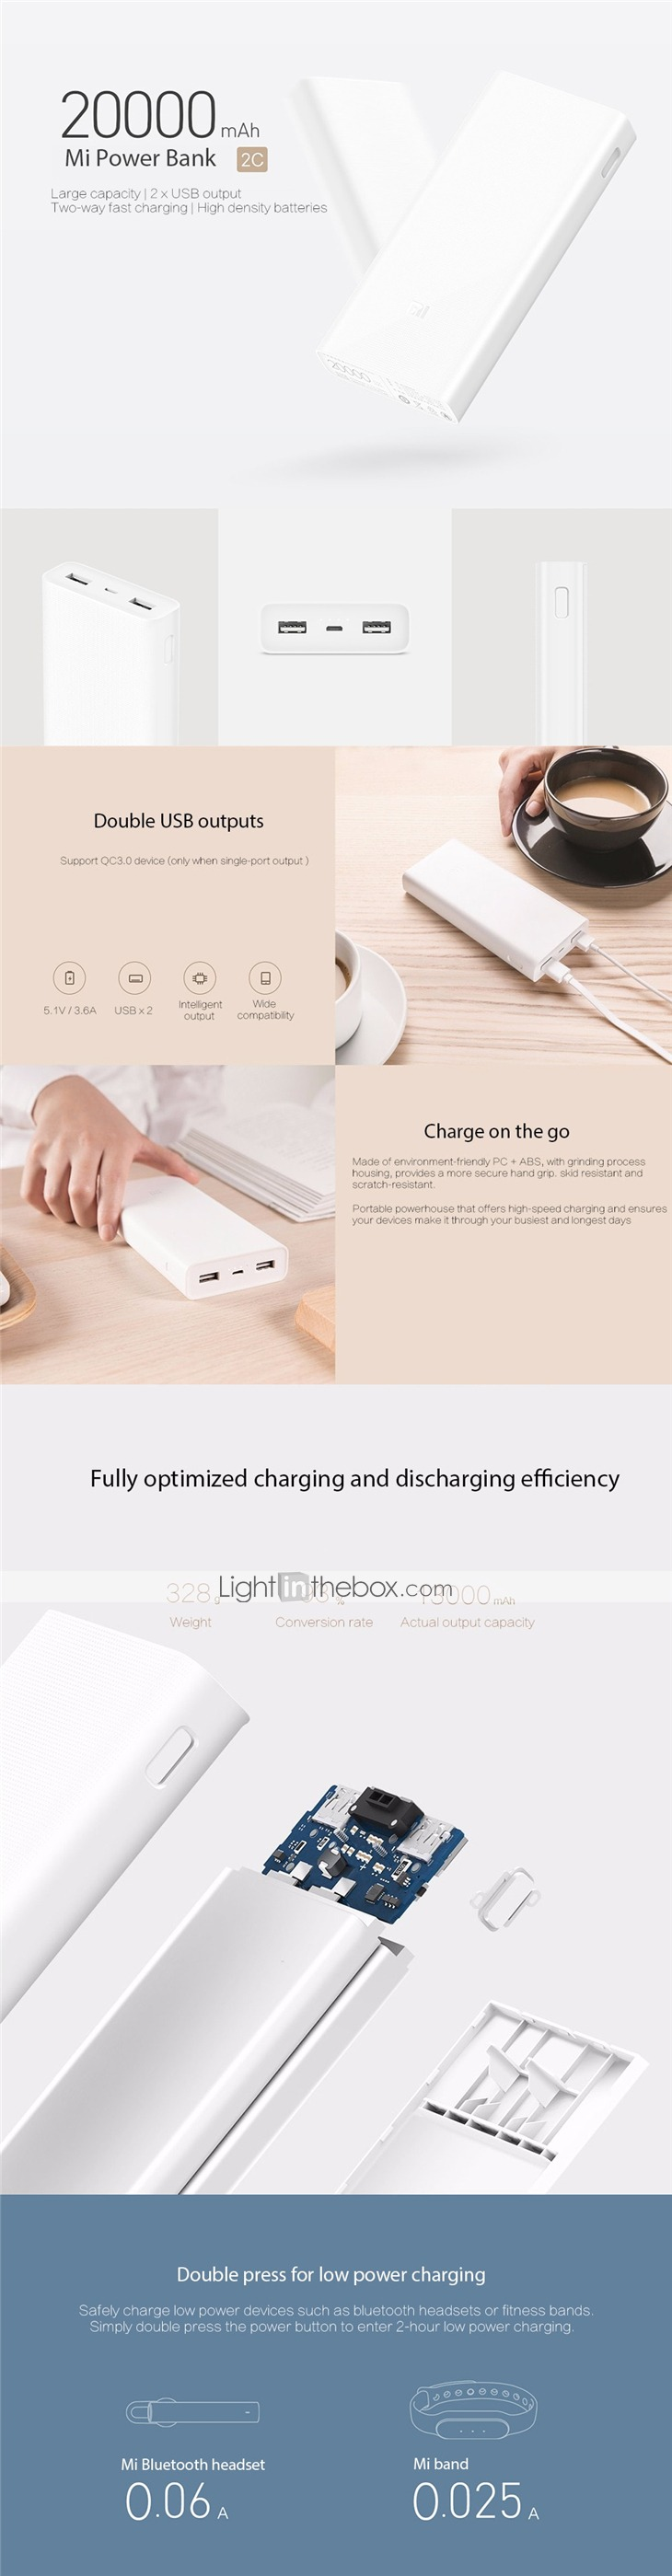 20 With Coupon For Original Xiaomi Mi 20000mah 2c Mobile Power Bank Powerbank Dual Ports Quick Charge Battery Portable Charger From Banggood China Secret Shopping Deals And